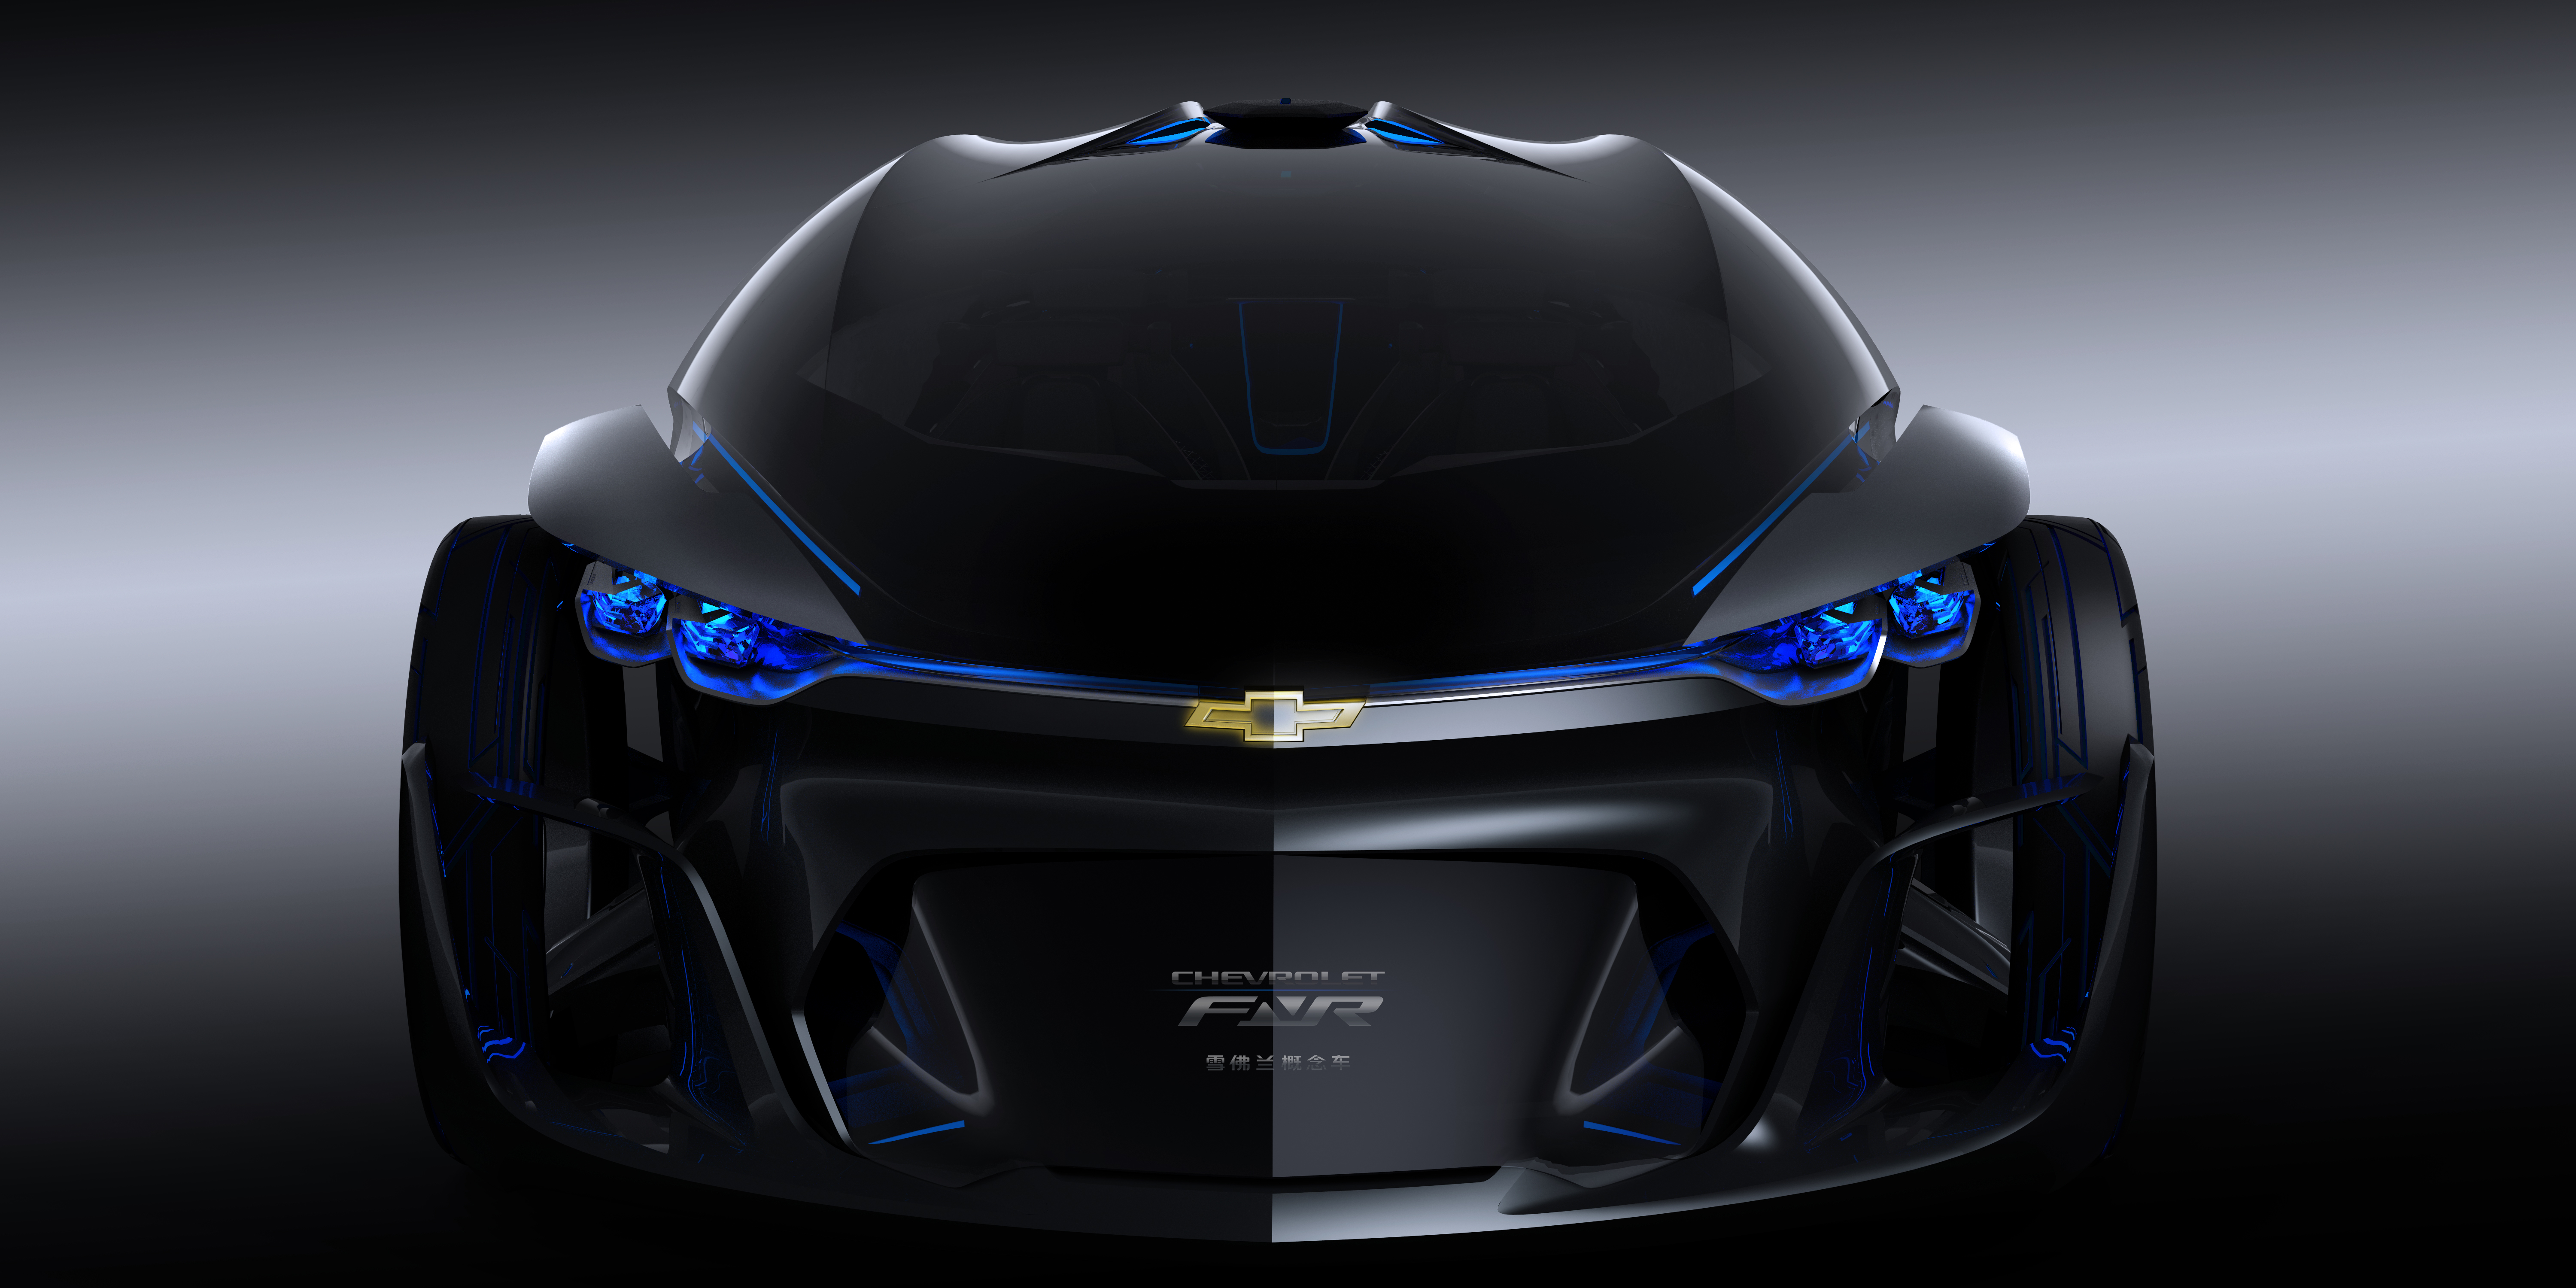 The Chevrolet Fnr Concept Is Impossible To Describe Seriously Just Look At It Verge